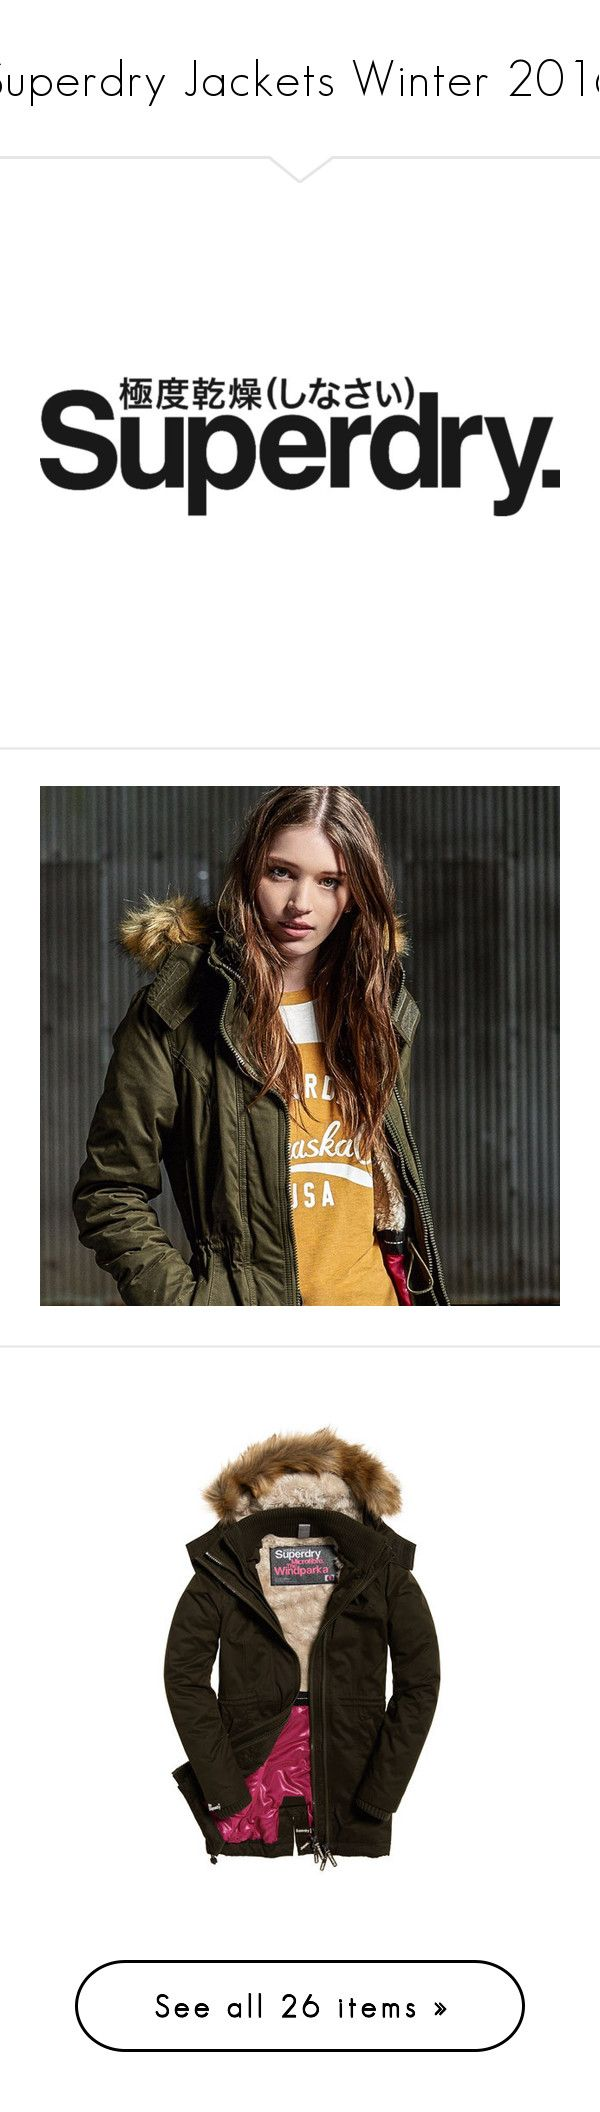 """""""Superdry Jackets Winter 2016"""" by superdry ❤ liked on Polyvore featuring outerwear, jackets, brown jacket, tall jackets, superdry, microfiber jacket, superdry jacket, army jacket, coats and fuji"""